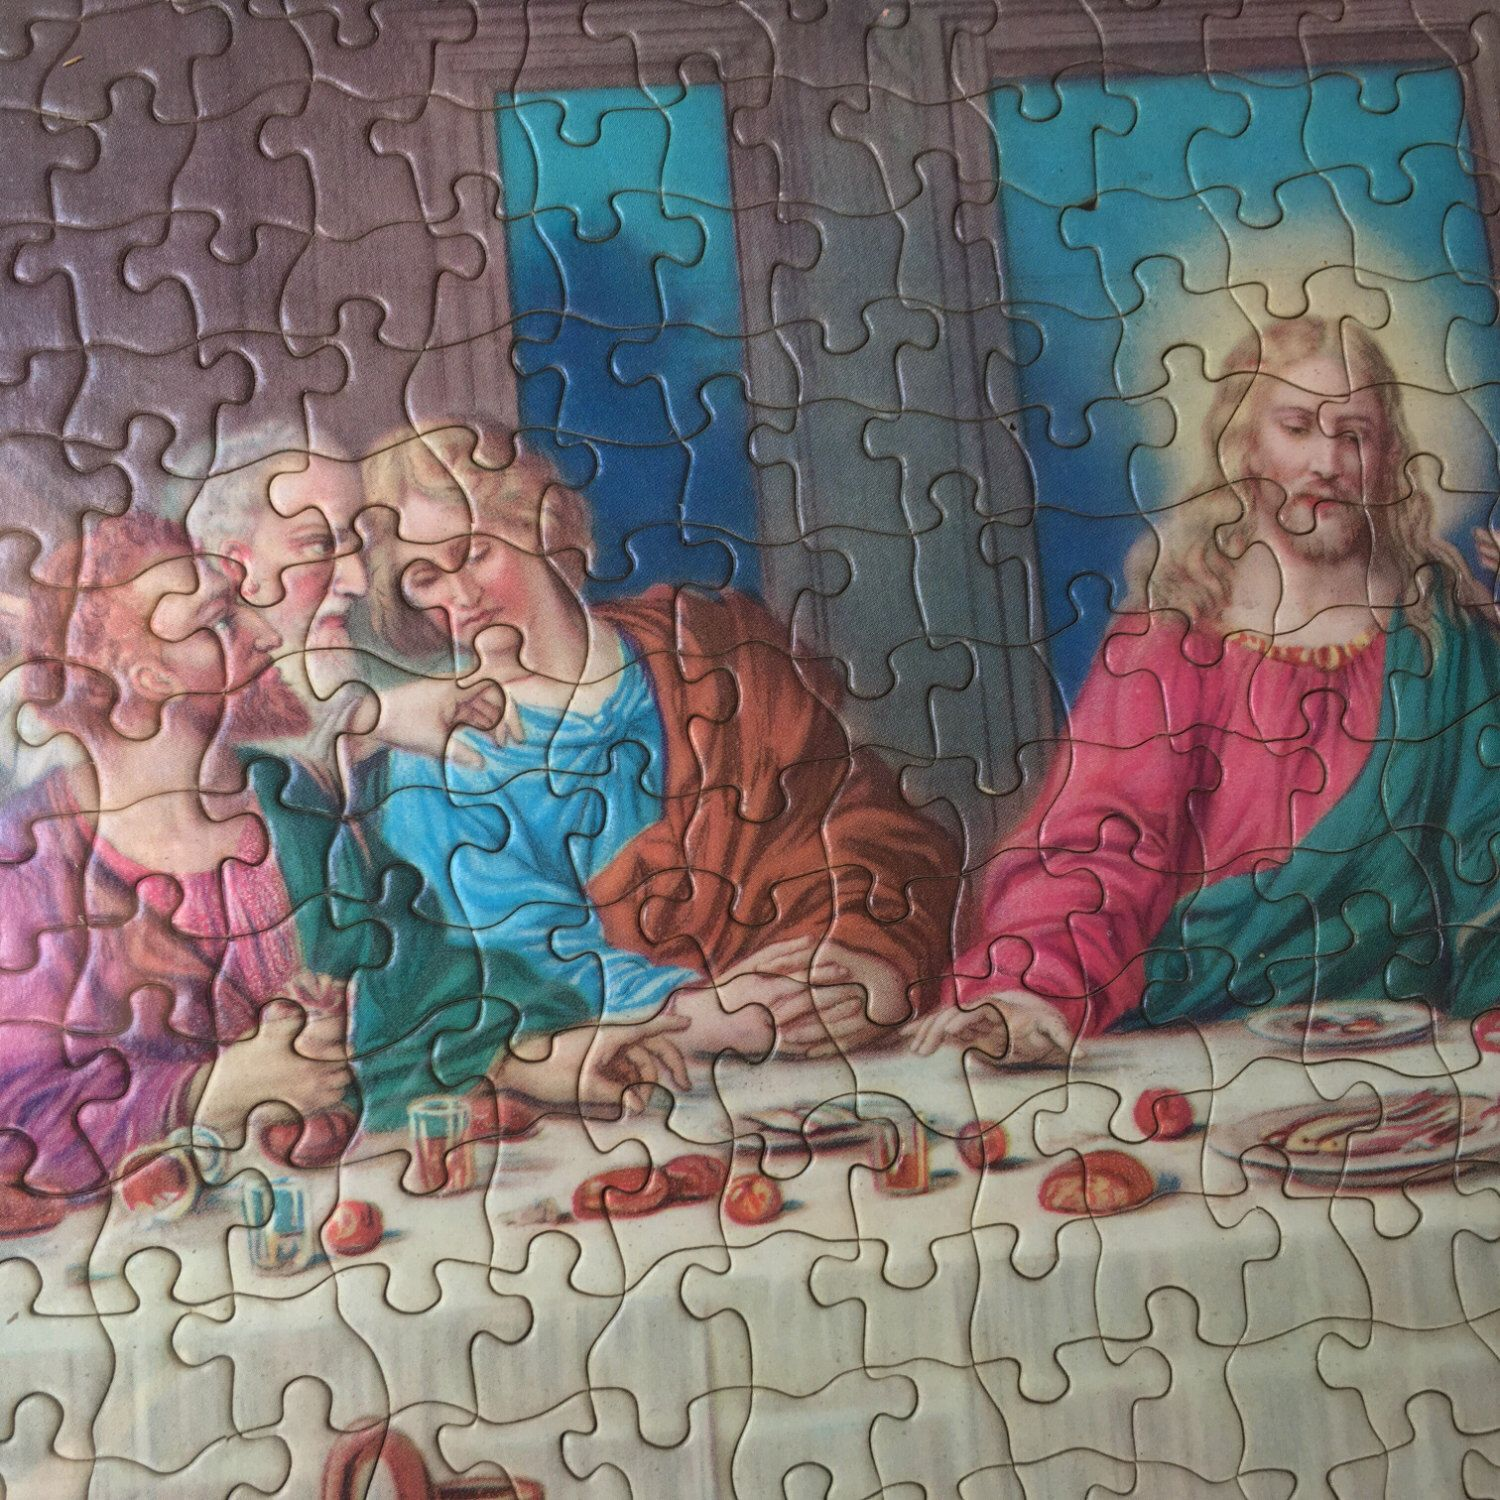 Large Vintage Framed Puzzle of The Last Supper-1960s-Milton Bradley-1000-Piece Puzzle-Kitsch-Home Decor by PriorStory on Etsy https://www.etsy.com/listing/479075207/large-vintage-framed-puzzle-of-the-last